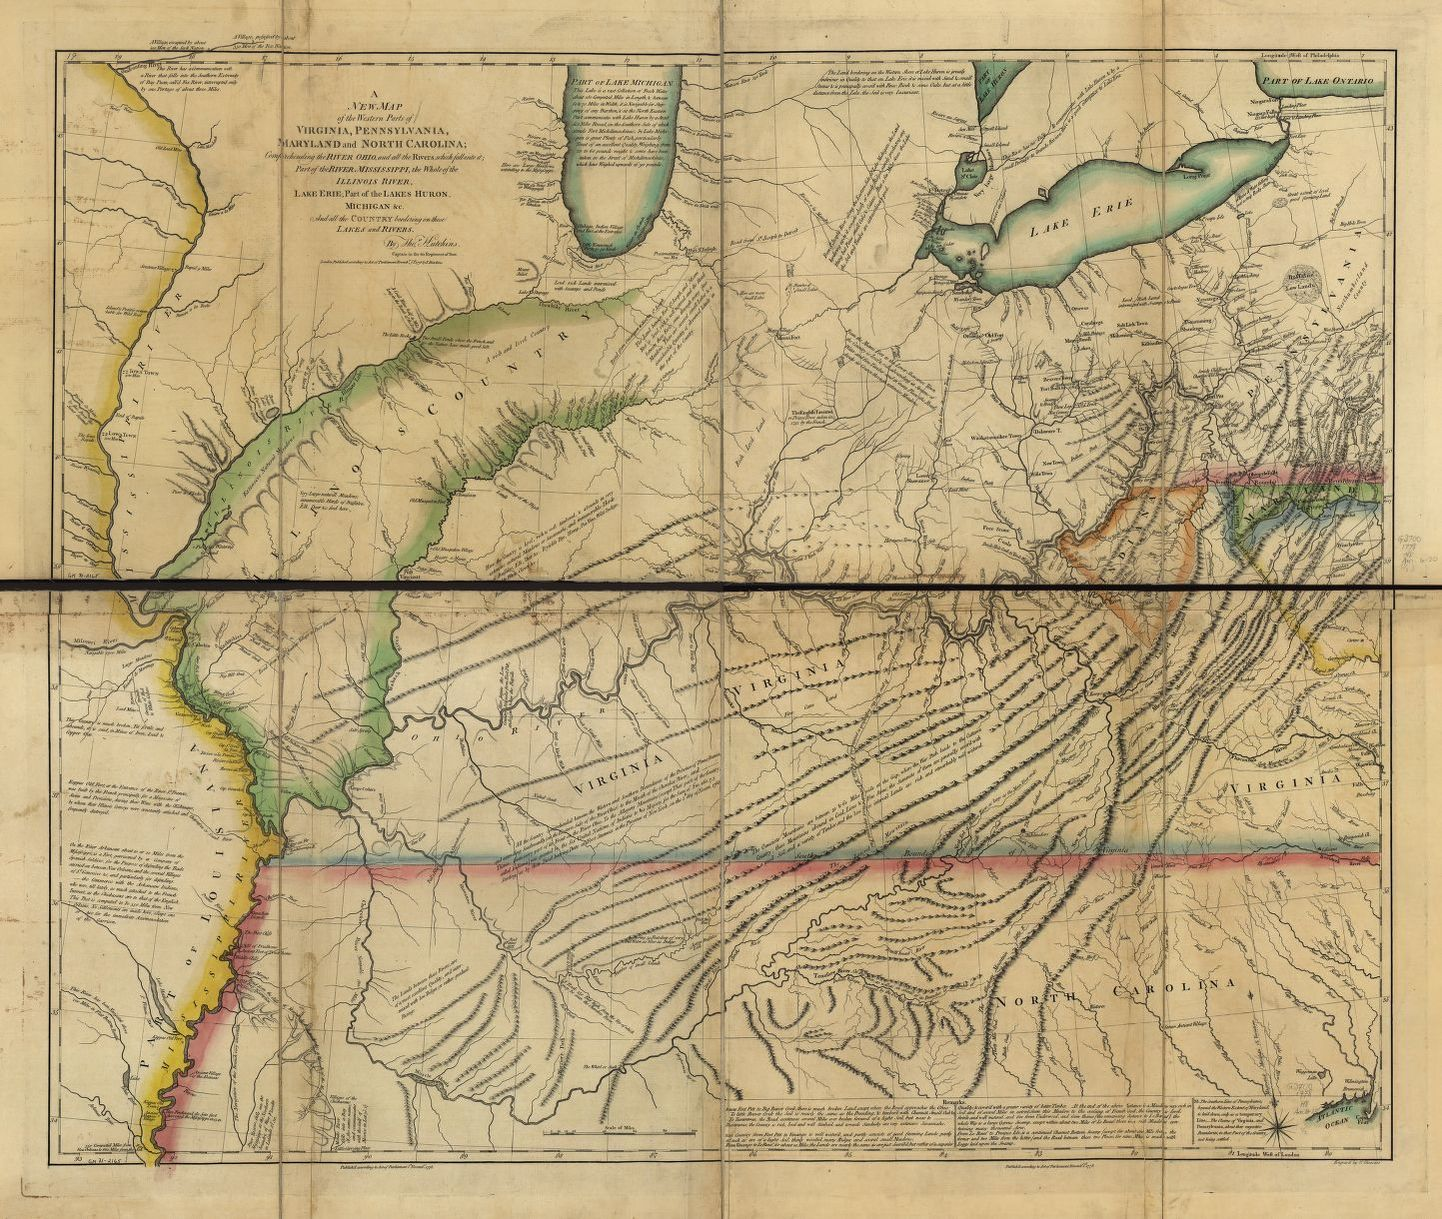 A 1780 map from the Rochambeau collection at the Library of Congress that shows the western parts of Virginia, Pennsylvania, Maryland, and North Carolina